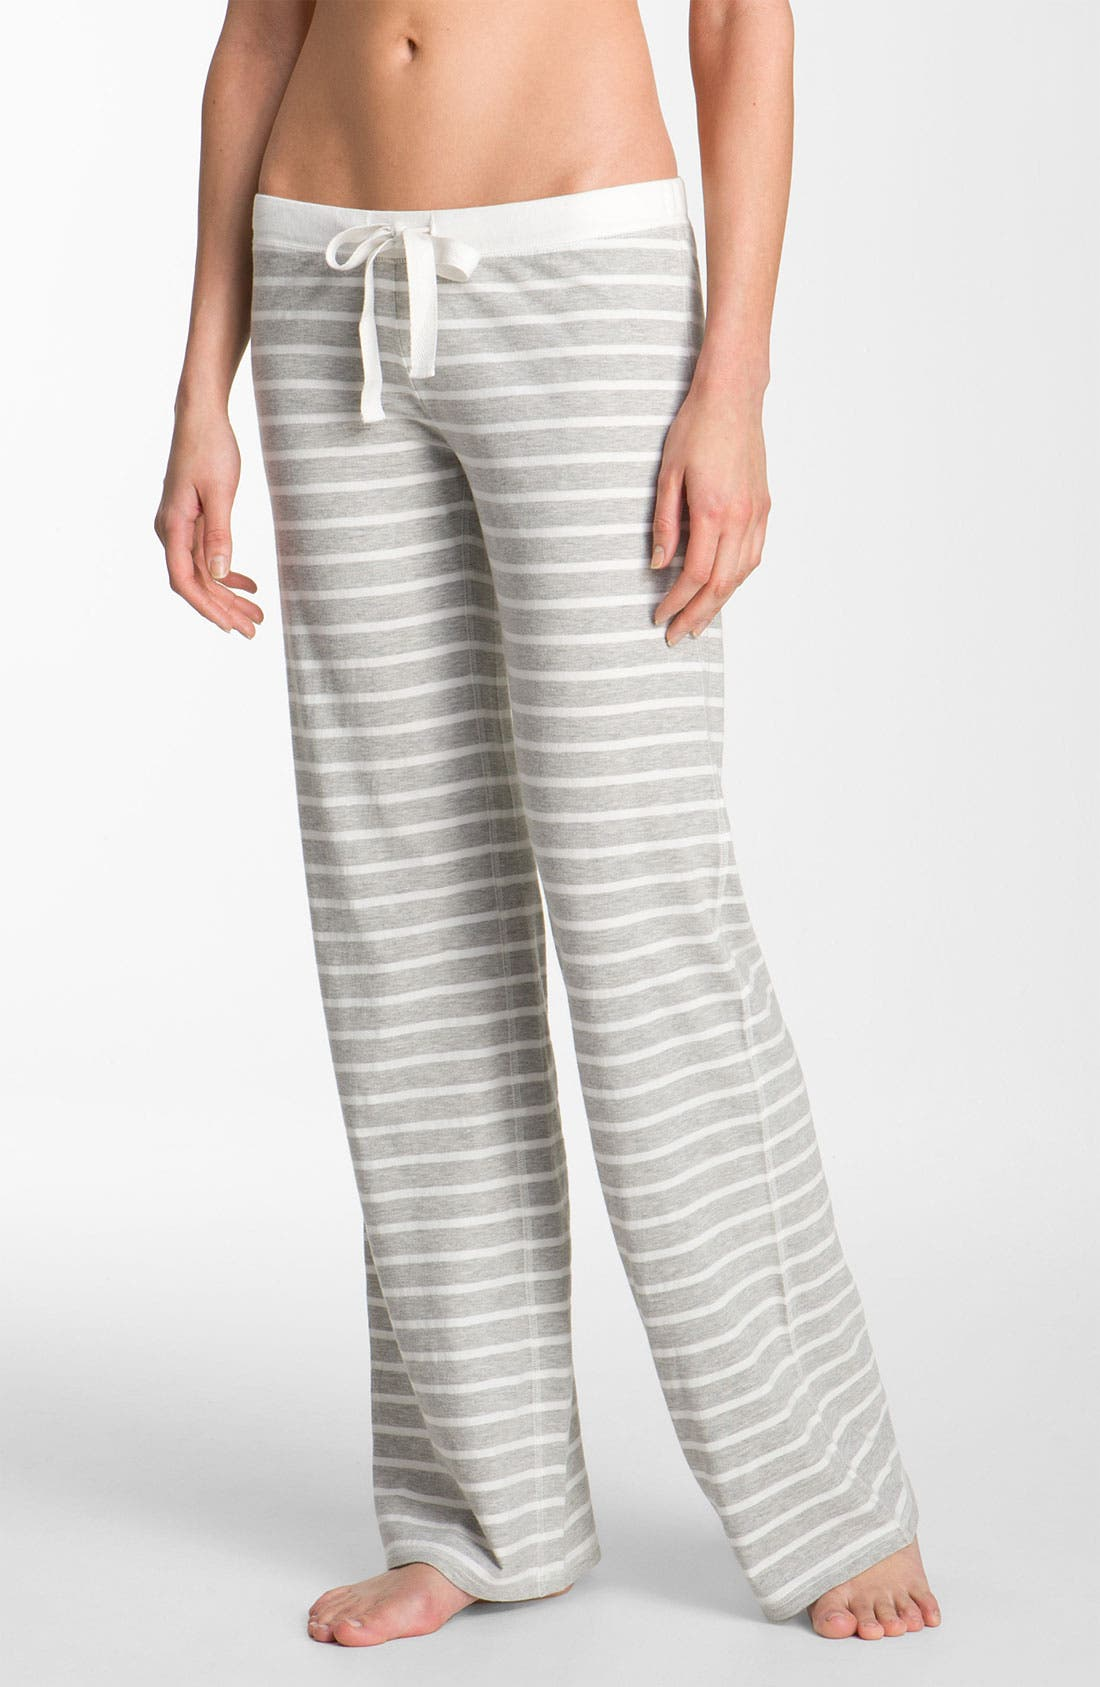 Alternate Image 1 Selected - Make + Model 'Sleepy Time' Lounge Pants